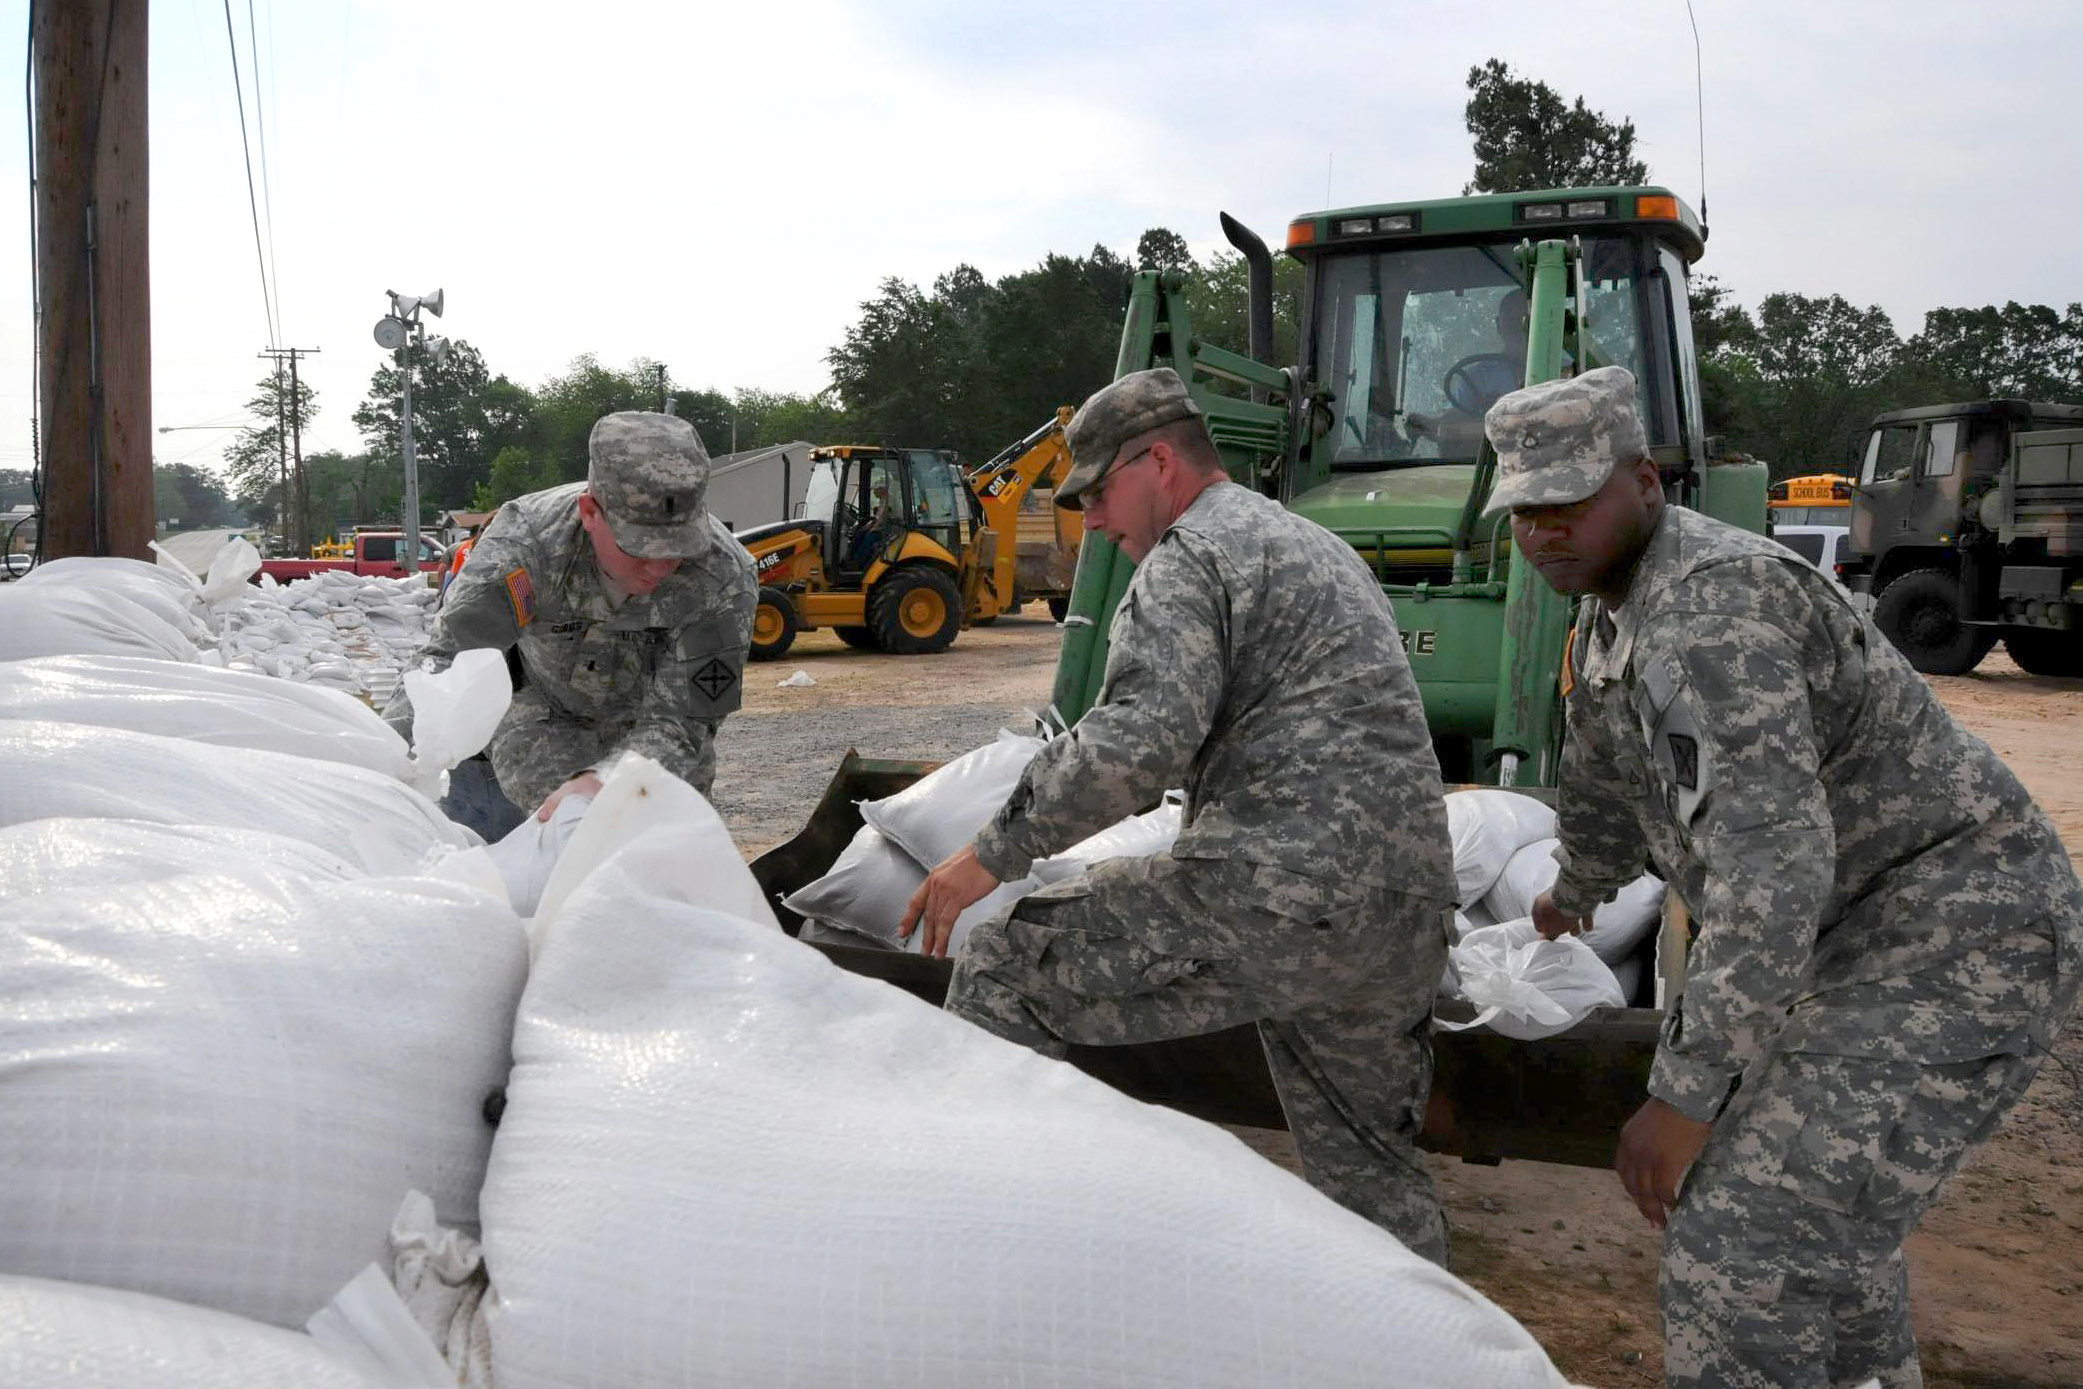 Army soldiers place sandbags in areas affected by flooding from the